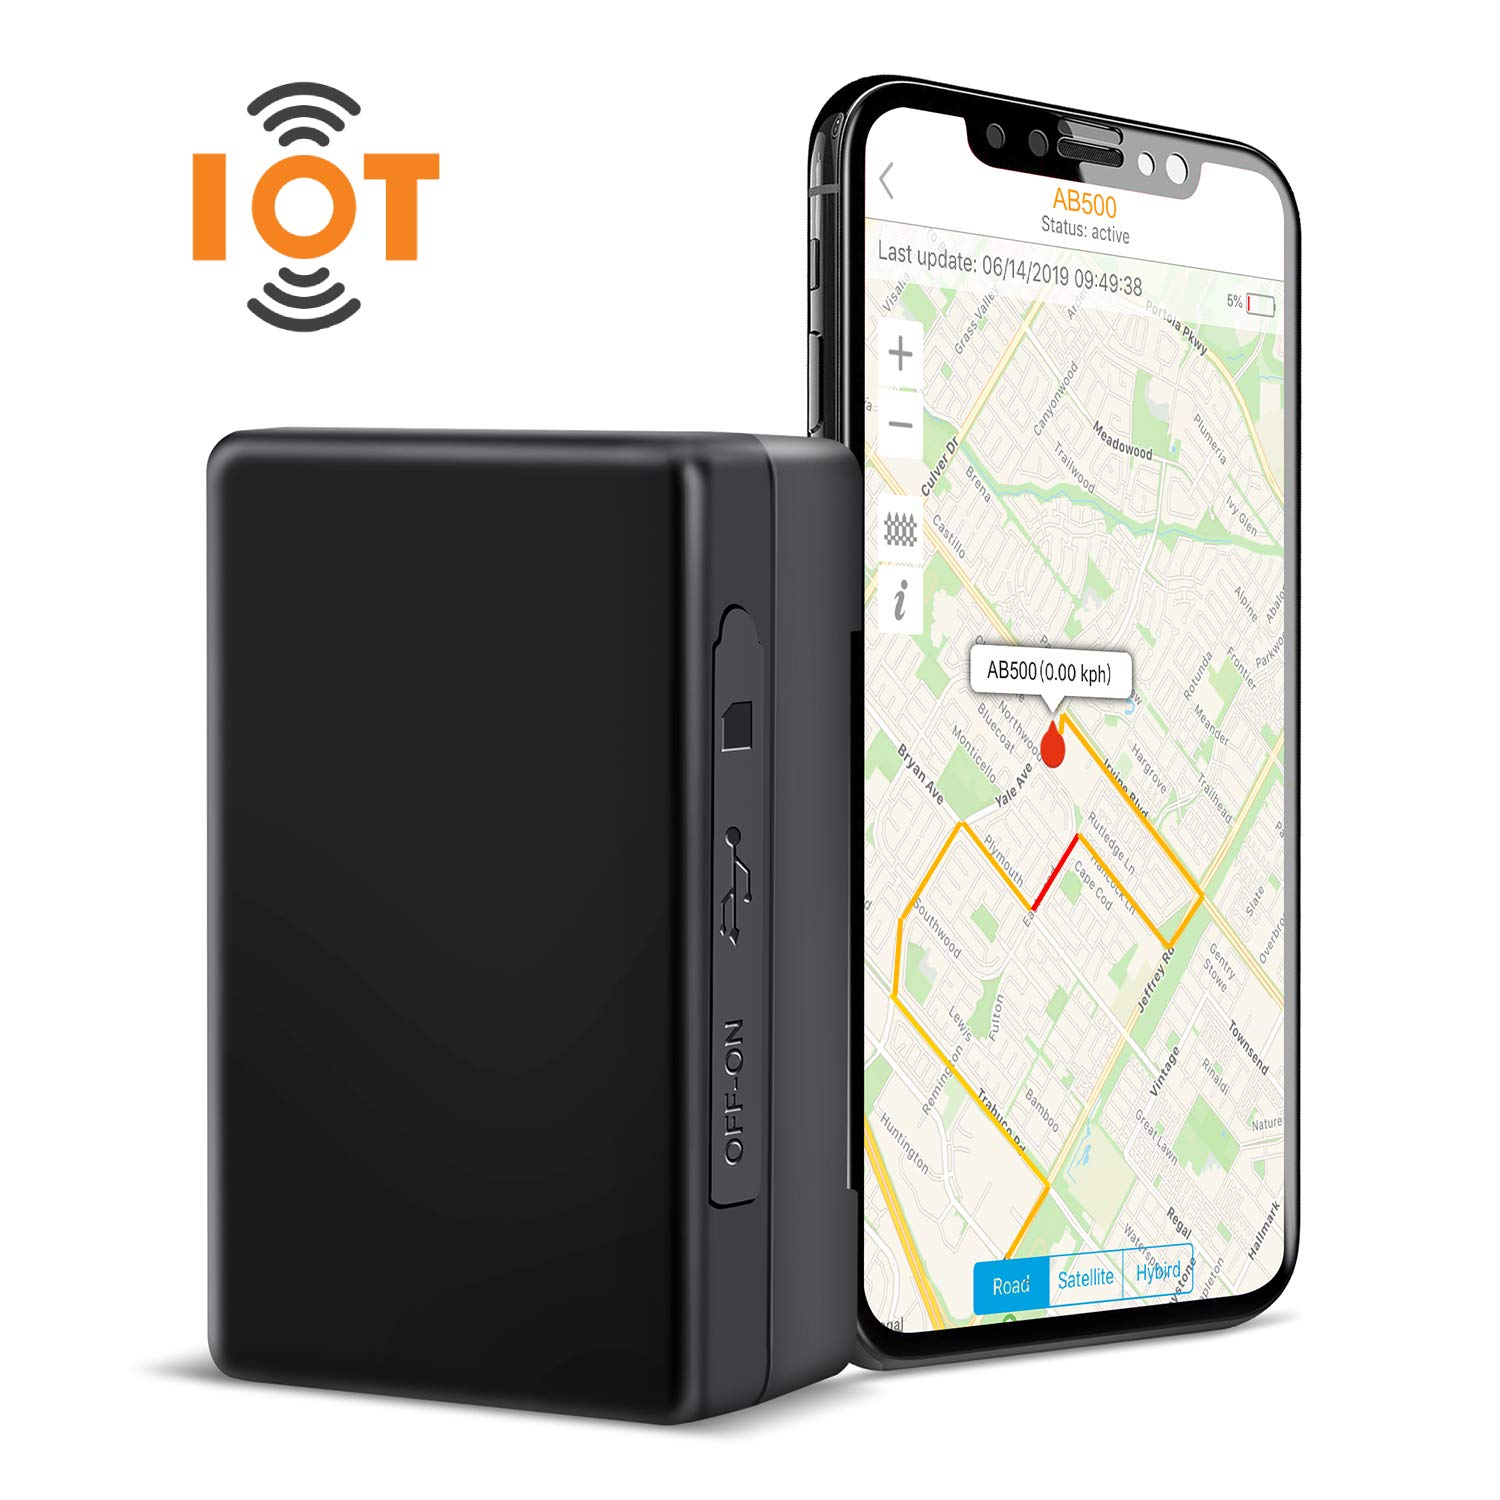 ABLEGRID GPS Tracker loT-NB CaT-M 4G 7800mAh Real-time GPS Tracking Device Small Hidden GPS Locator for Vehicle, Car, Personal, Valuable - with Global Data Card Support Mufti-Carrier Network by ABLEGRID